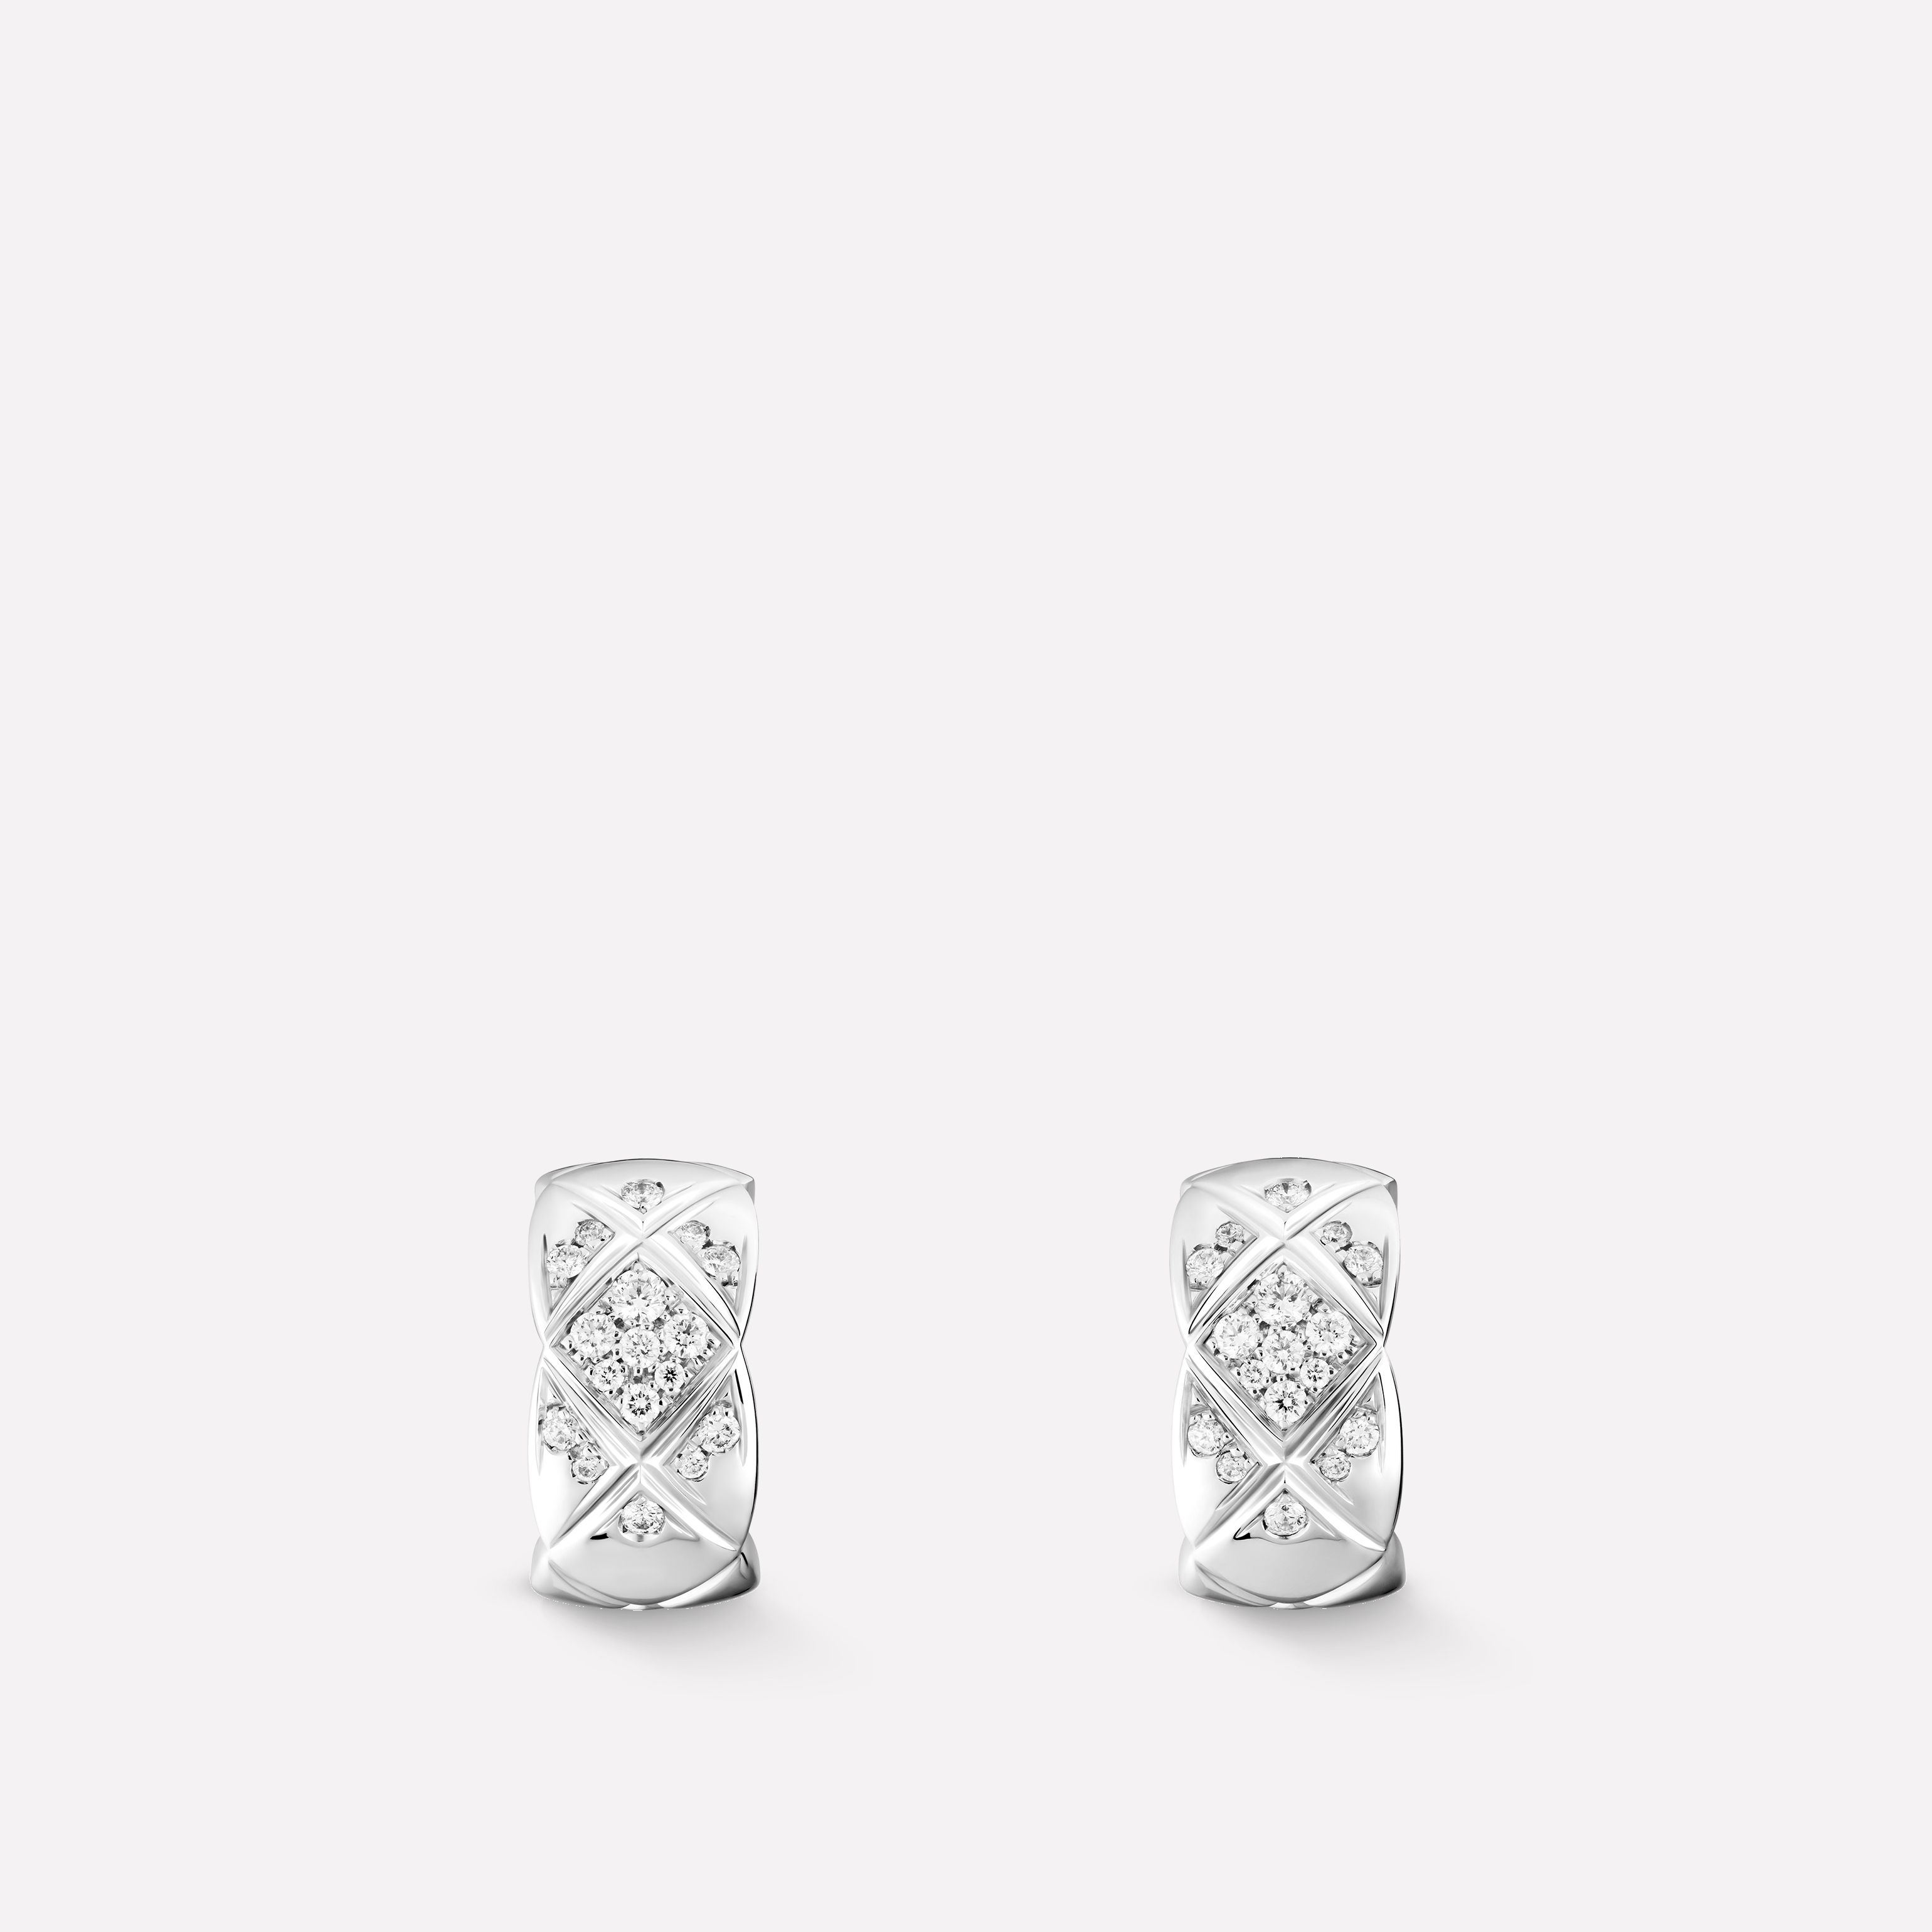 See Full Size Image Coco Crush Earrings J11135 Front View Standard